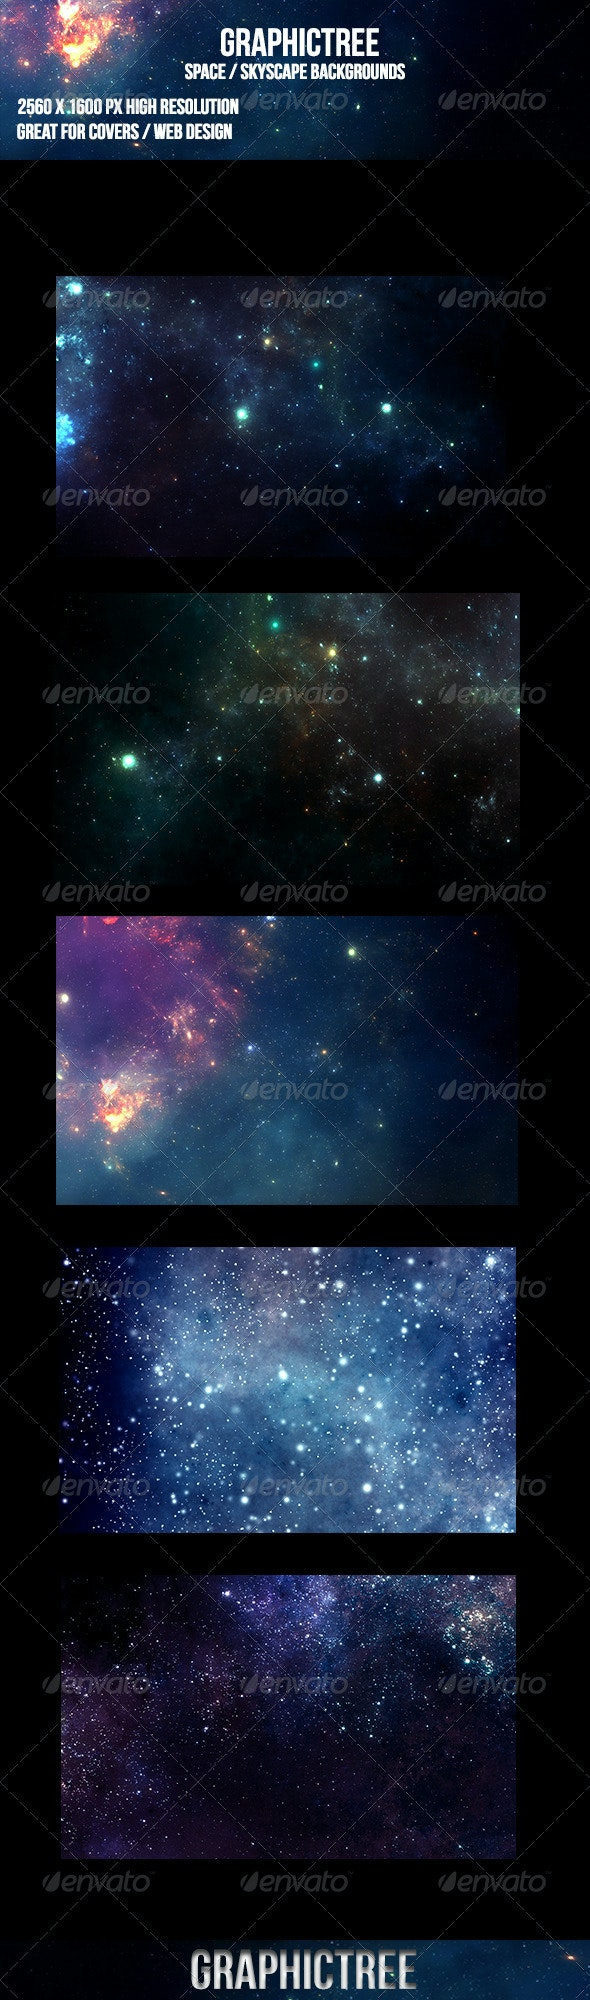 5 Space Skyscape Backgrounds - Backgrounds Graphics